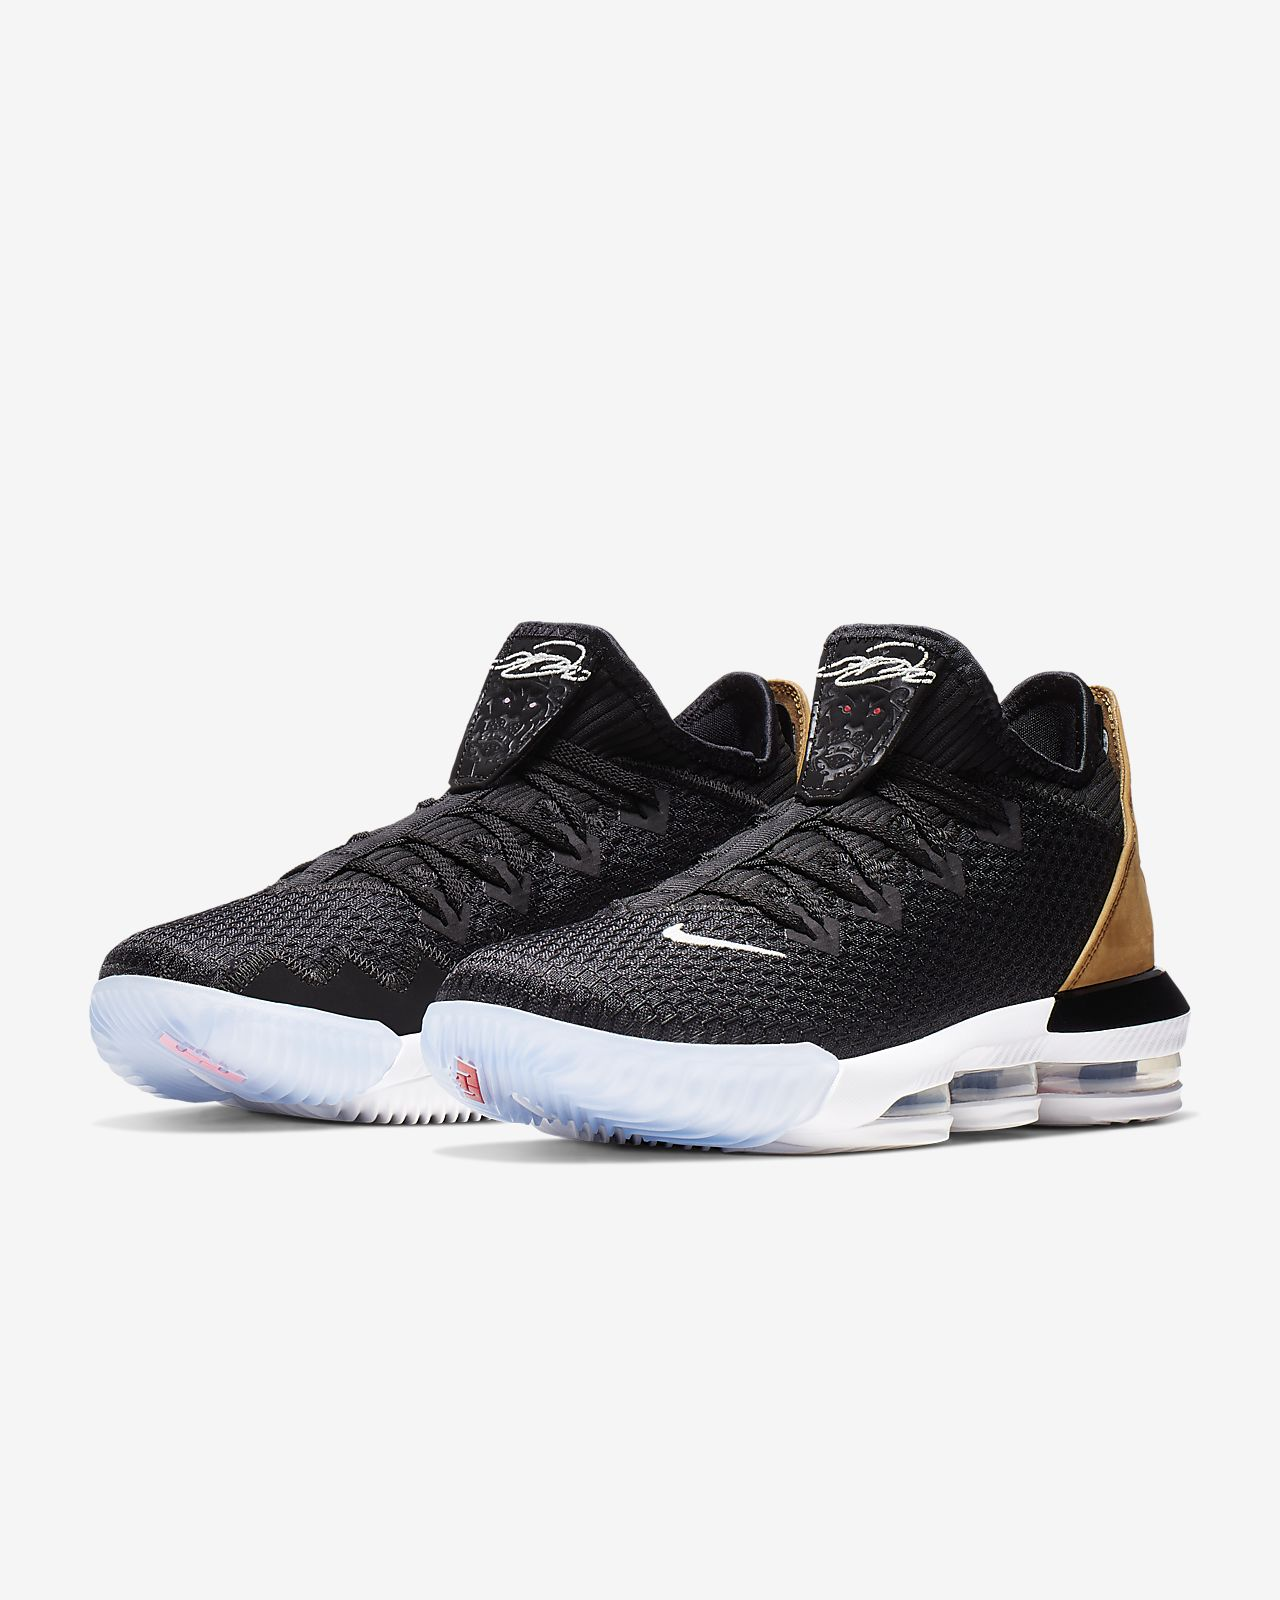 los angeles 28319 5c313 Low Resolution LeBron 16 Low Basketballschuh LeBron 16 Low Basketballschuh